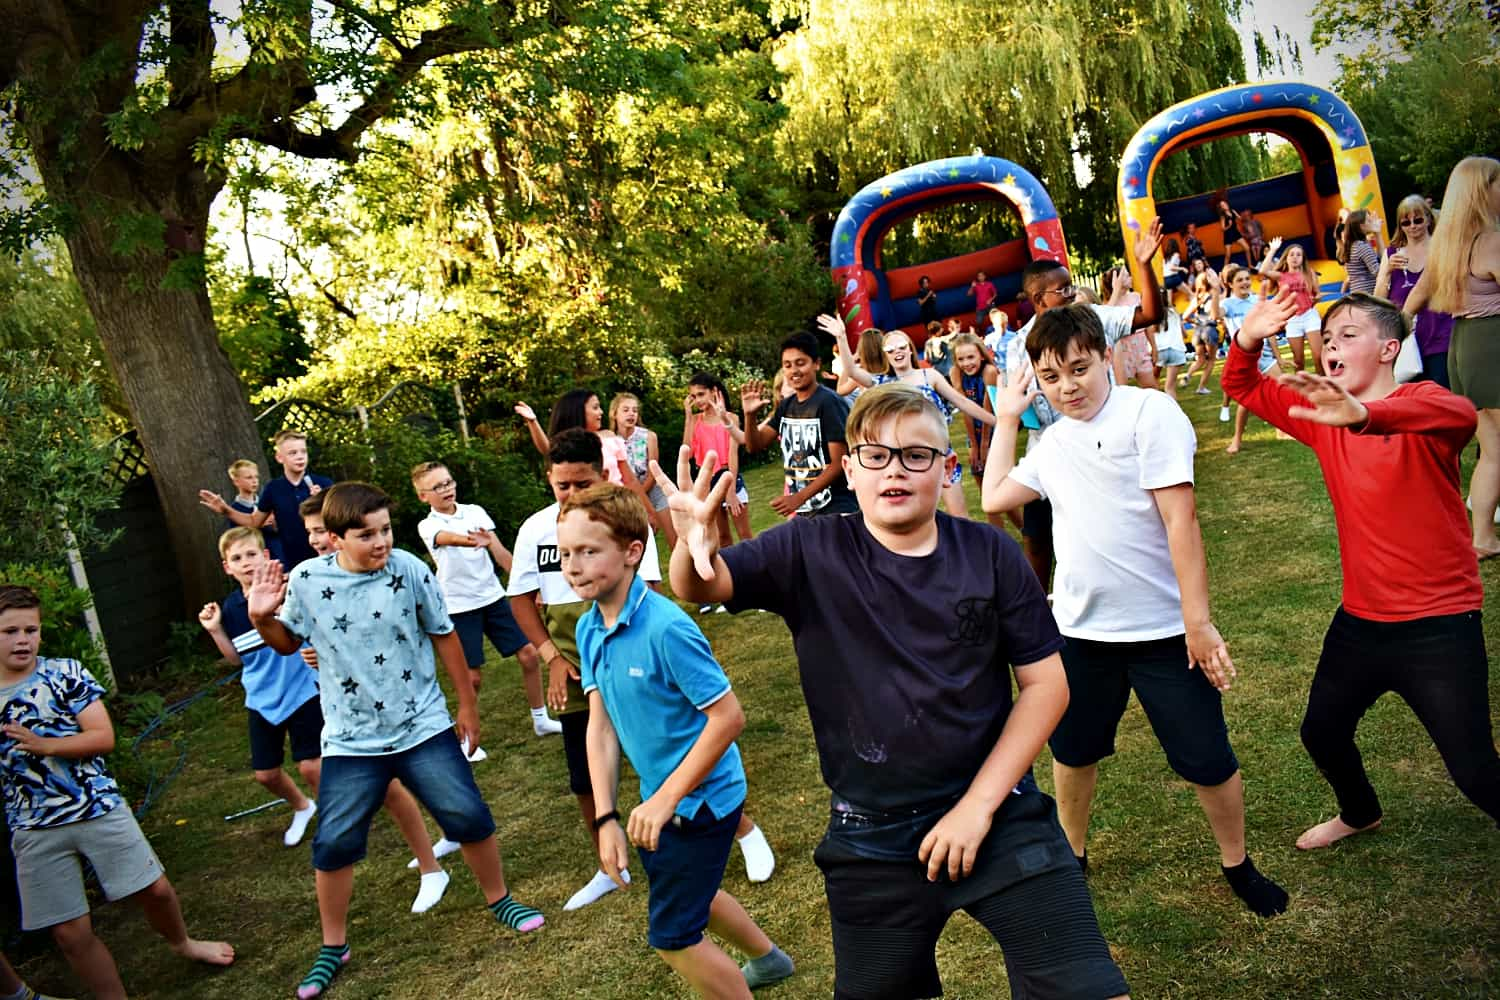 Year 6 leavers party ideas Essex - MMENT